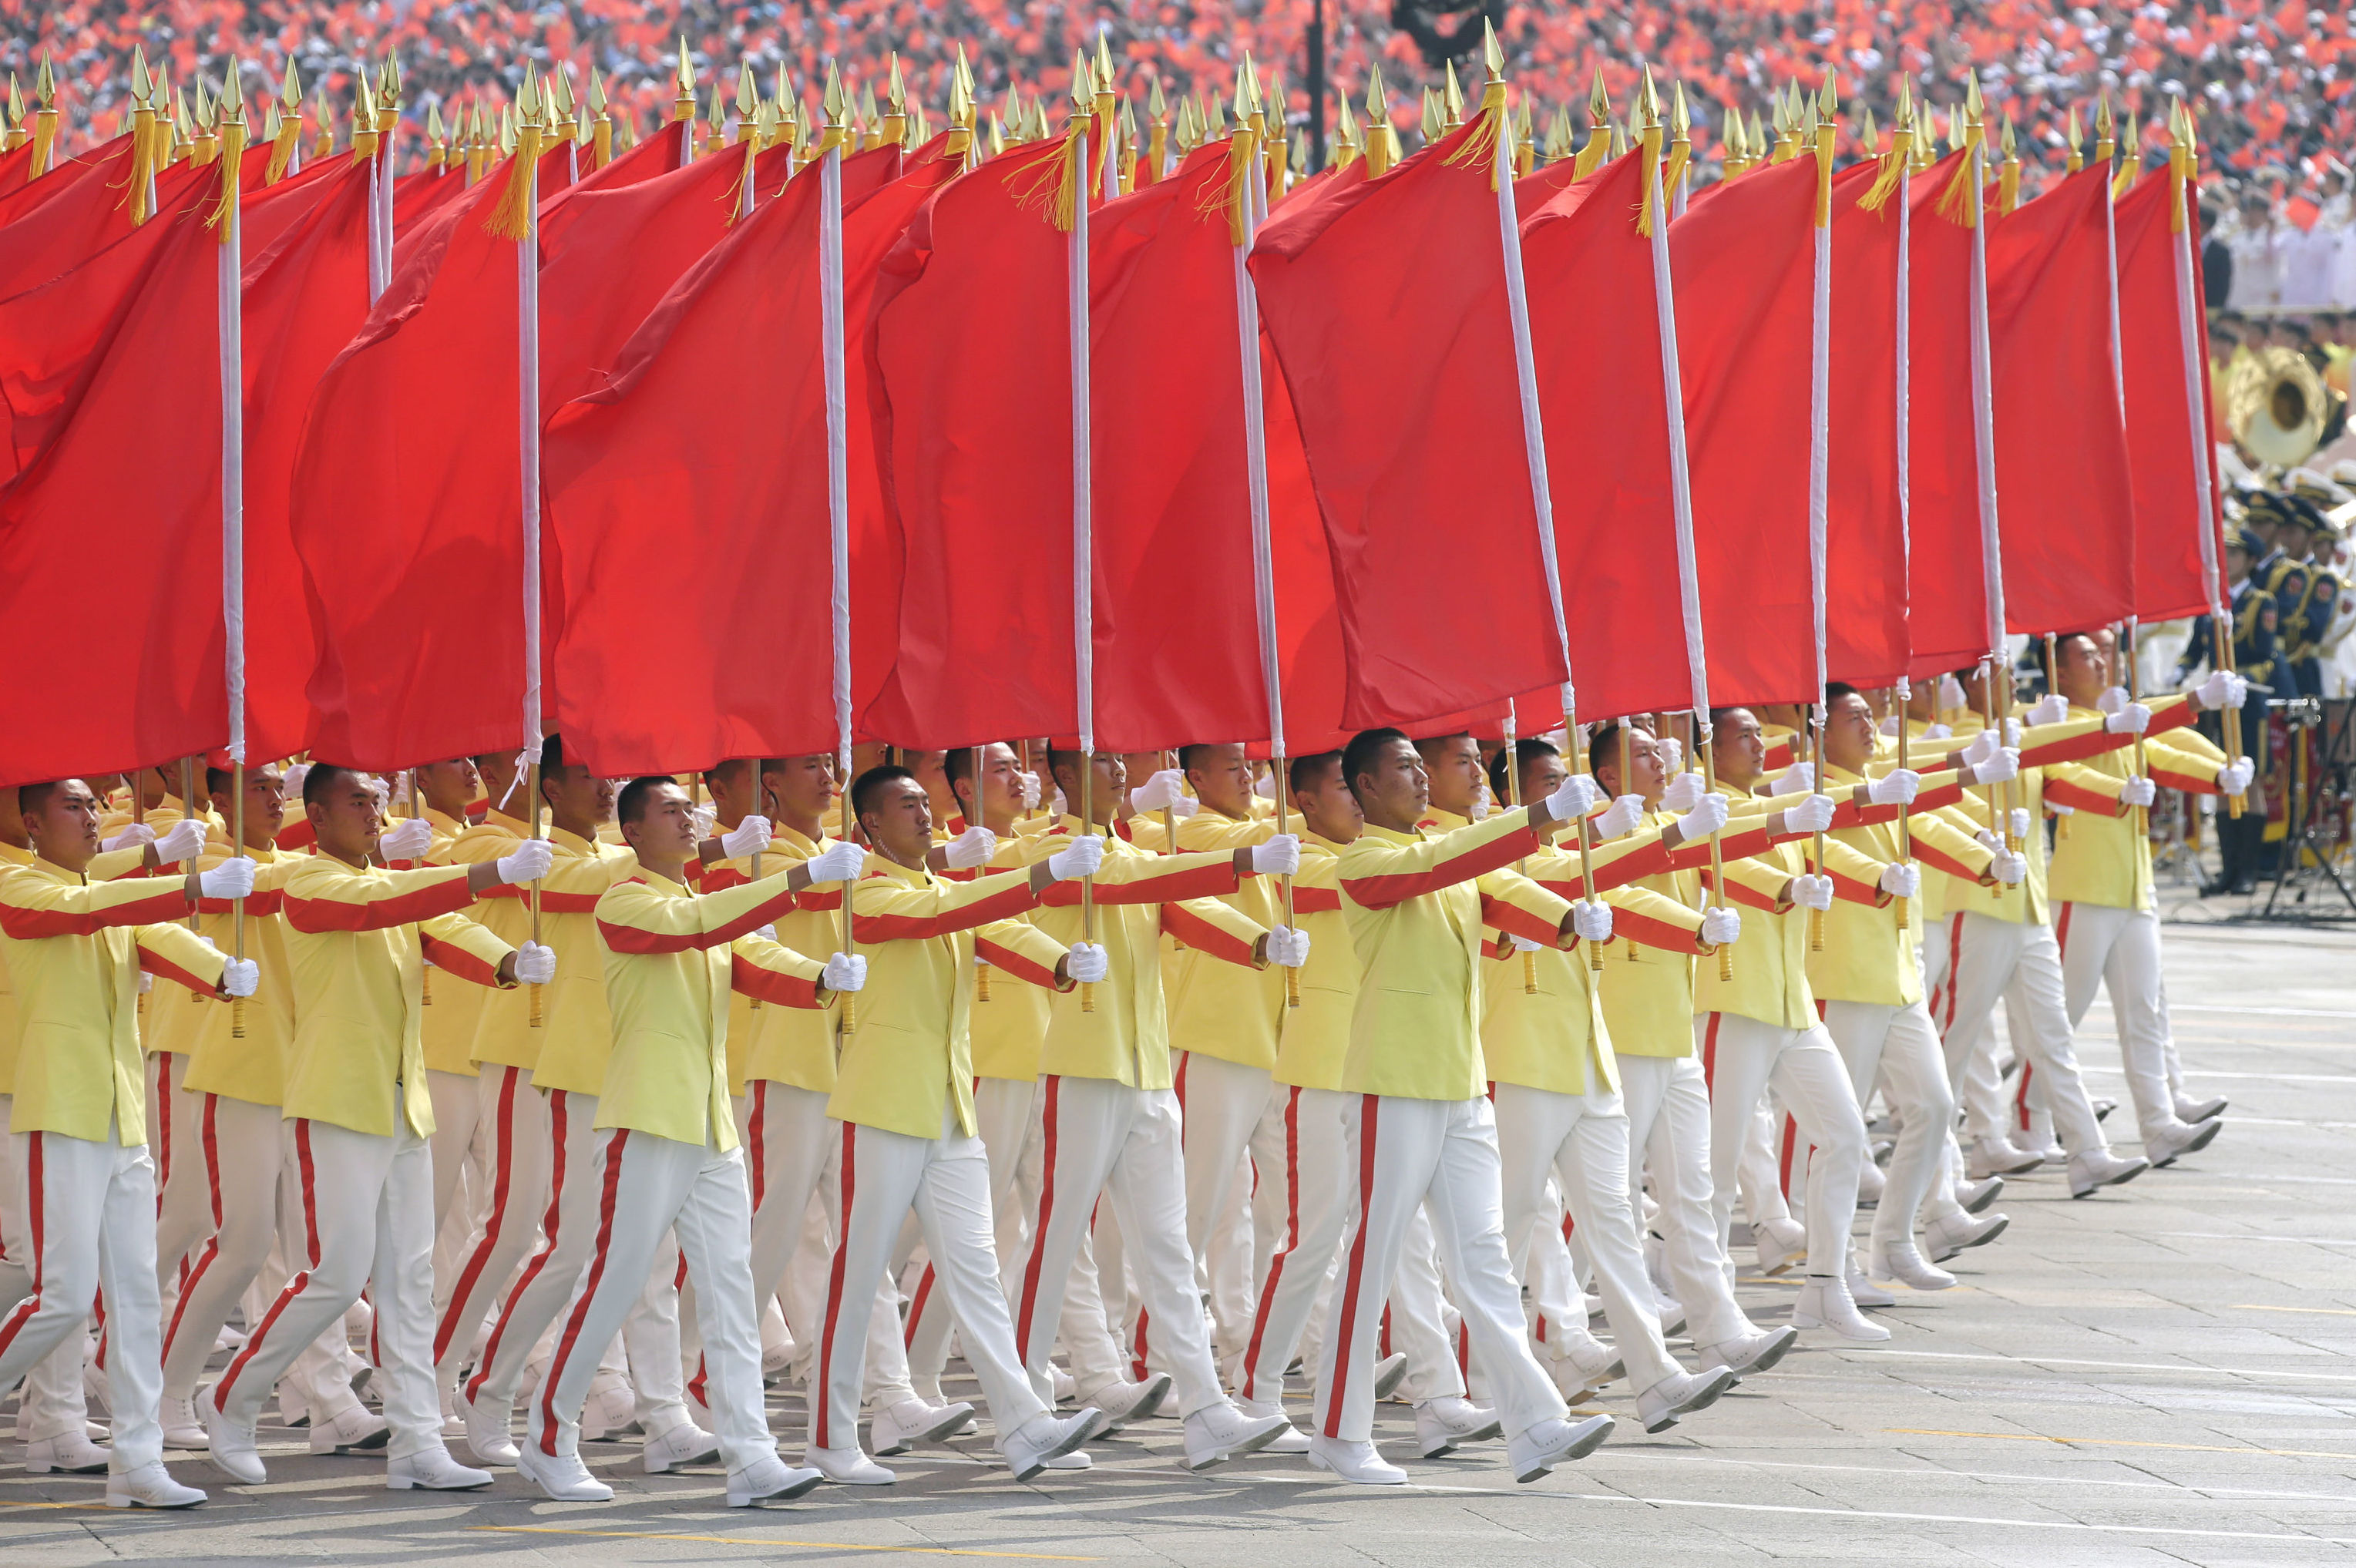 Performers carrying red flags take part in the parade marking the 70th founding anniversary of People's Republic of China, on its National Day in Beijing, China October 1, 2019